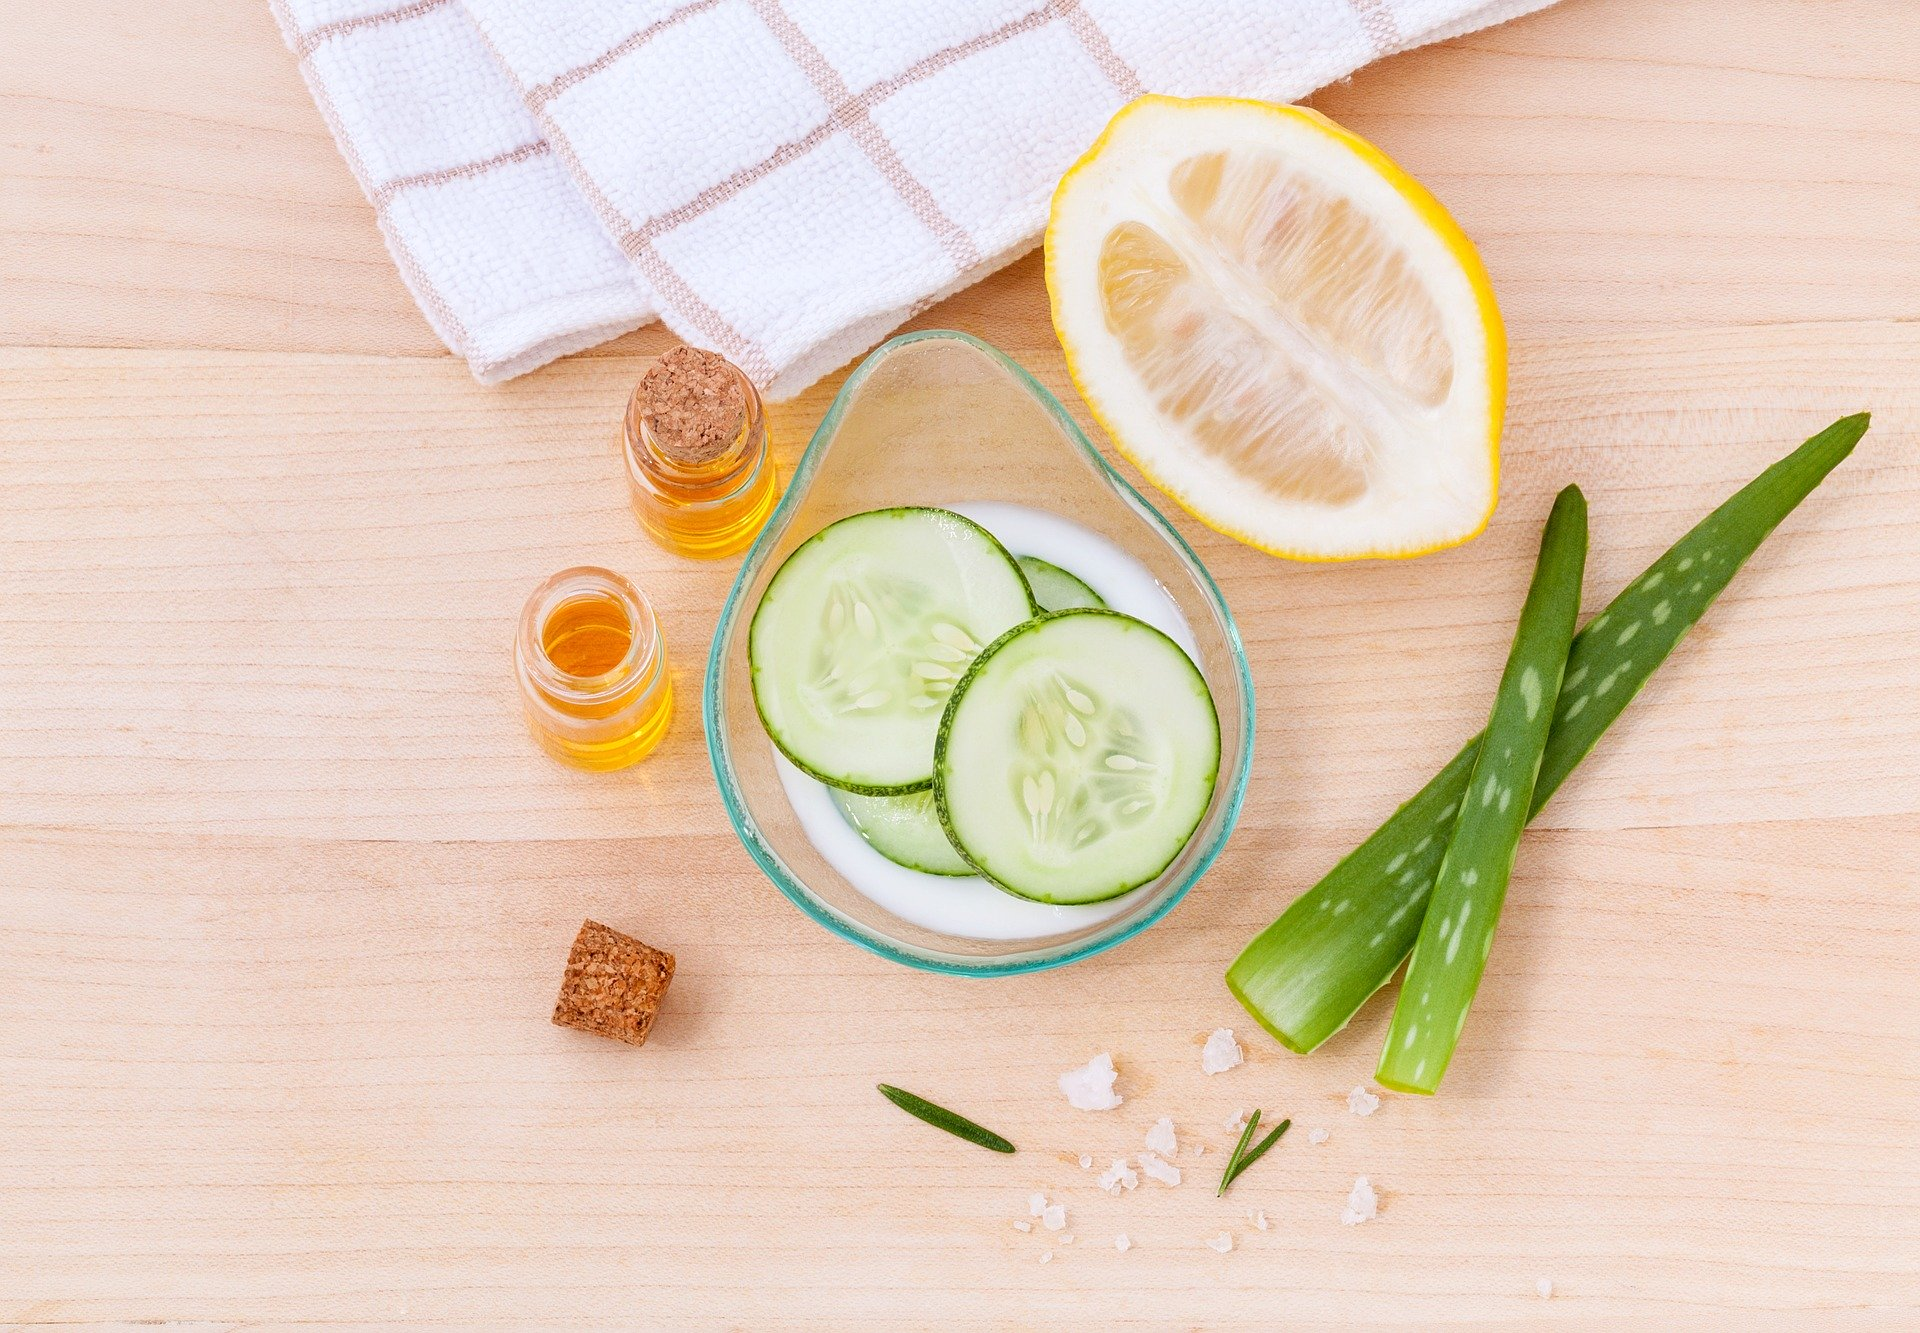 How to clean a skin-cleansing the skin for effective detoxification